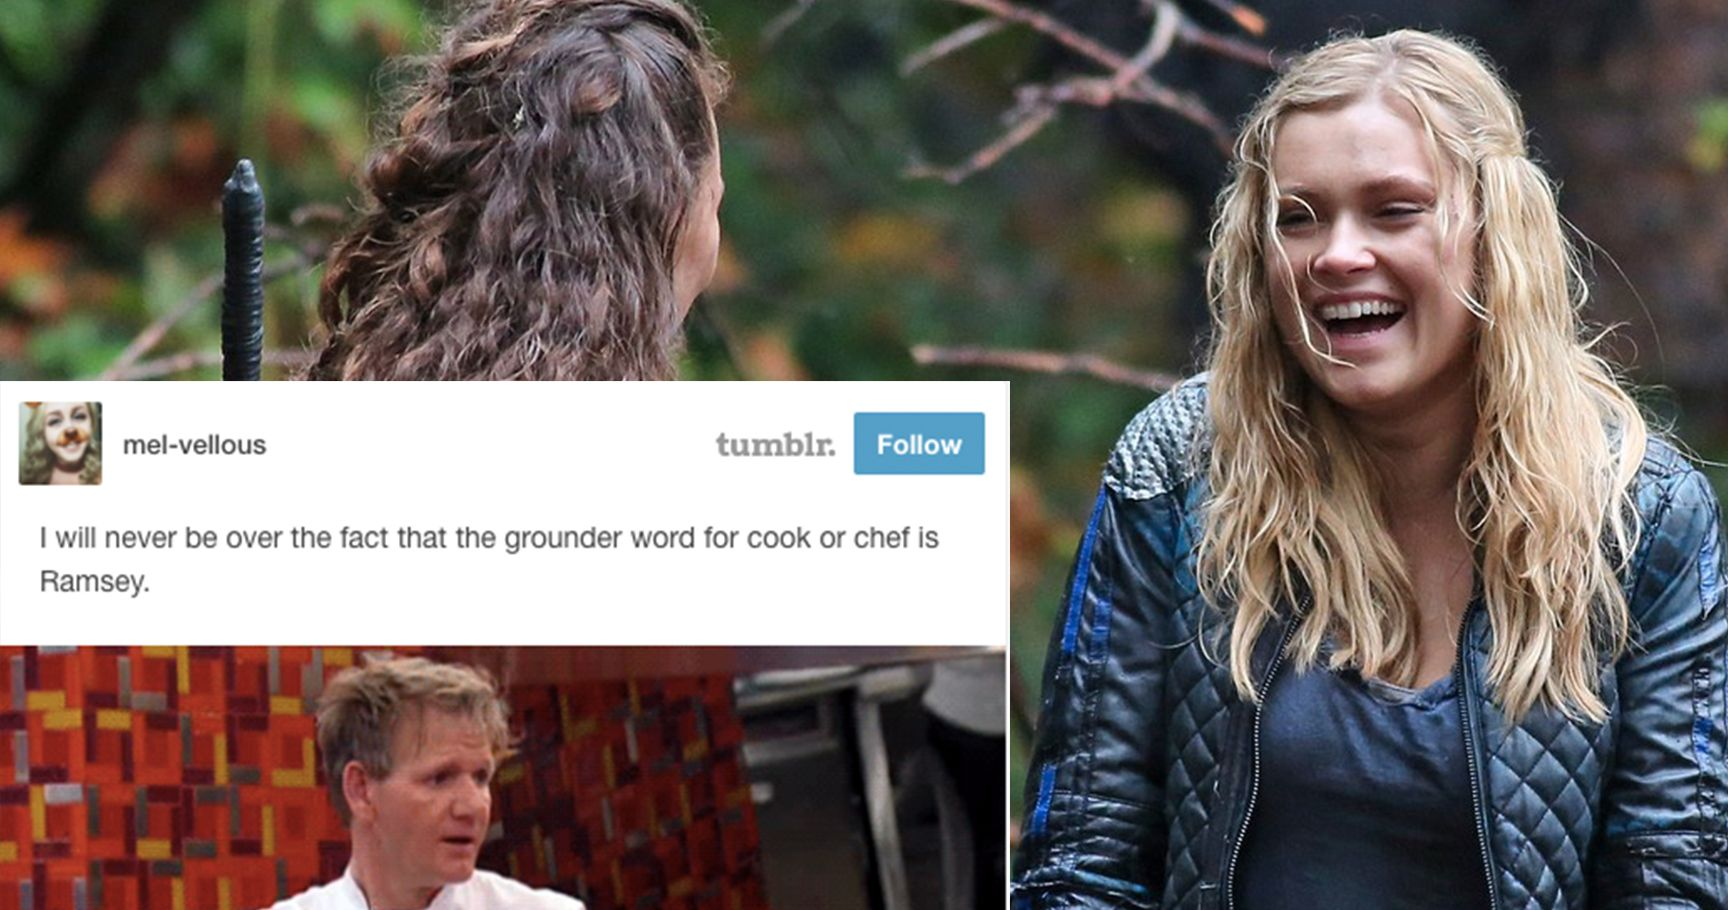 15 Tumblr Posts About 'The 100' That Will Make You Say 'Same'